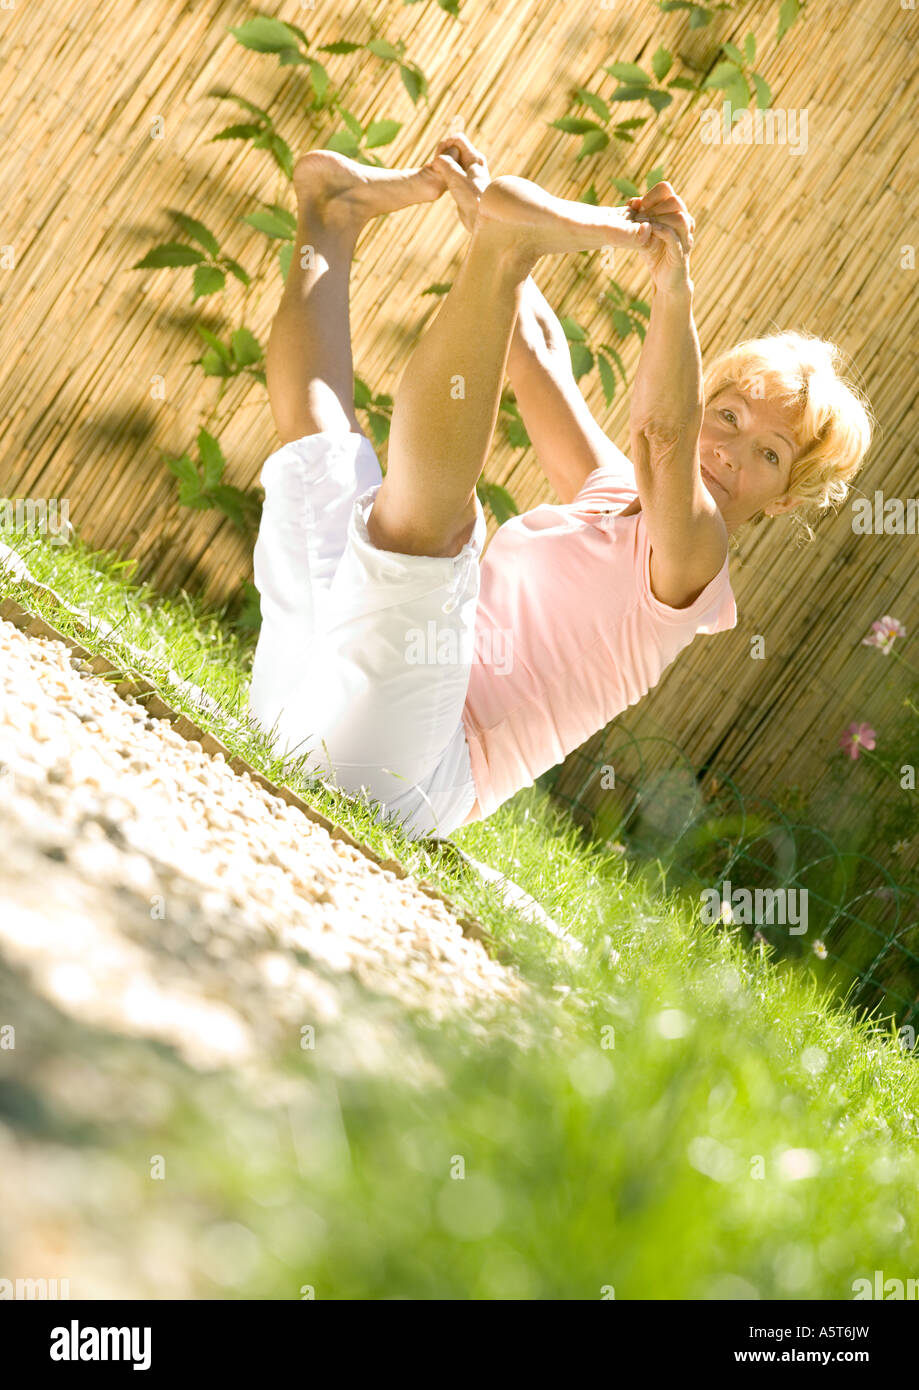 Senior woman stretching outdoors - Stock Image